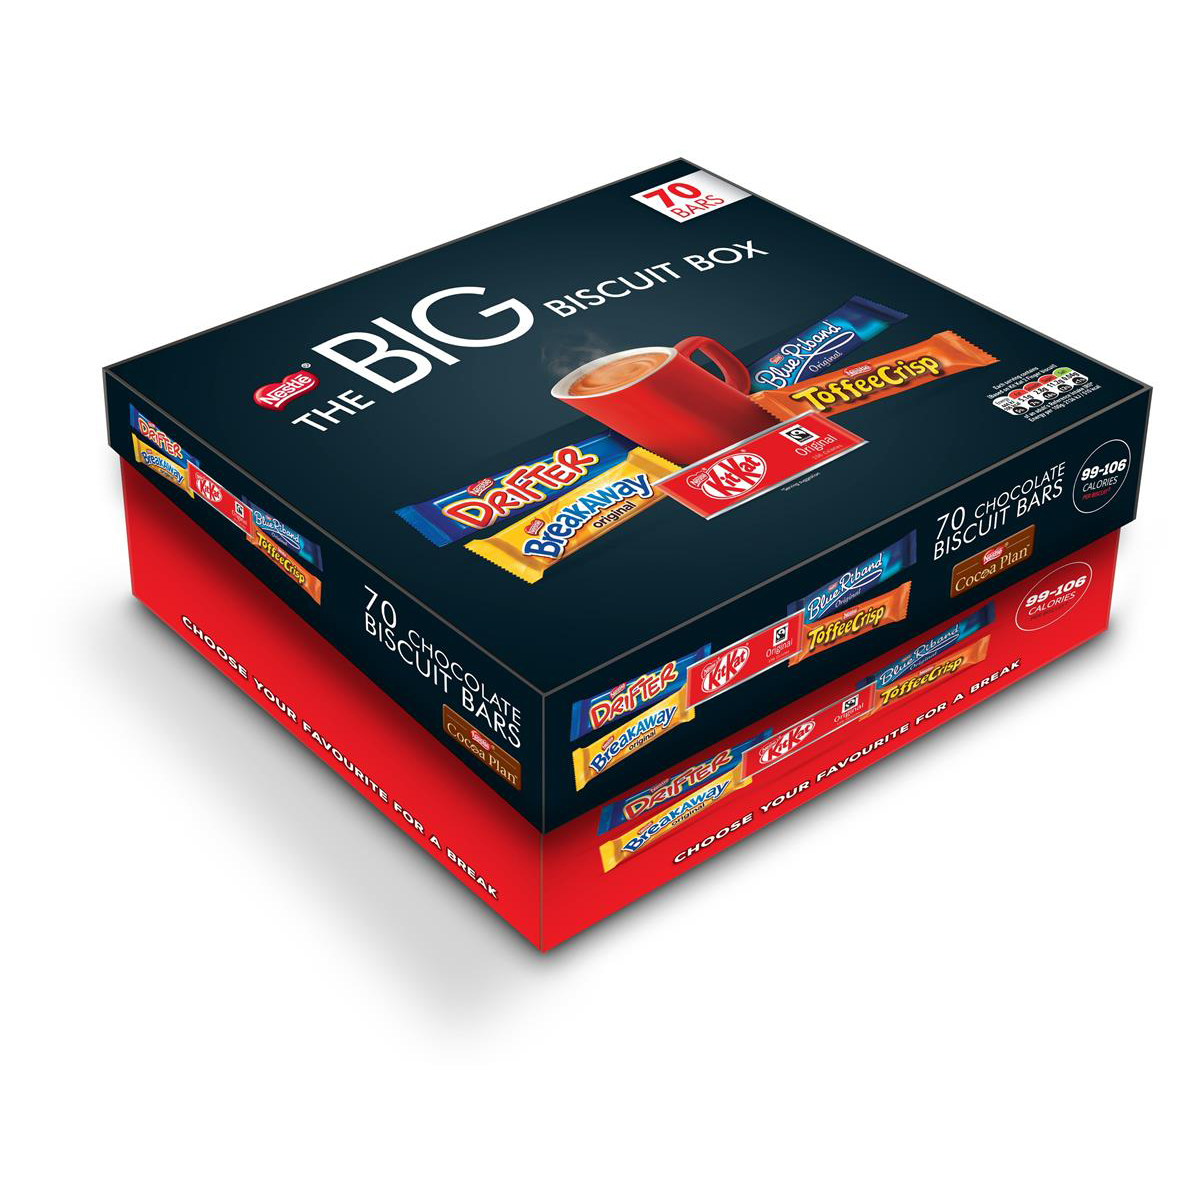 Nestle Big Chocolate Box Assorted 99 - 106 Calories Per Bar Ref 12391006 [Pack 70]